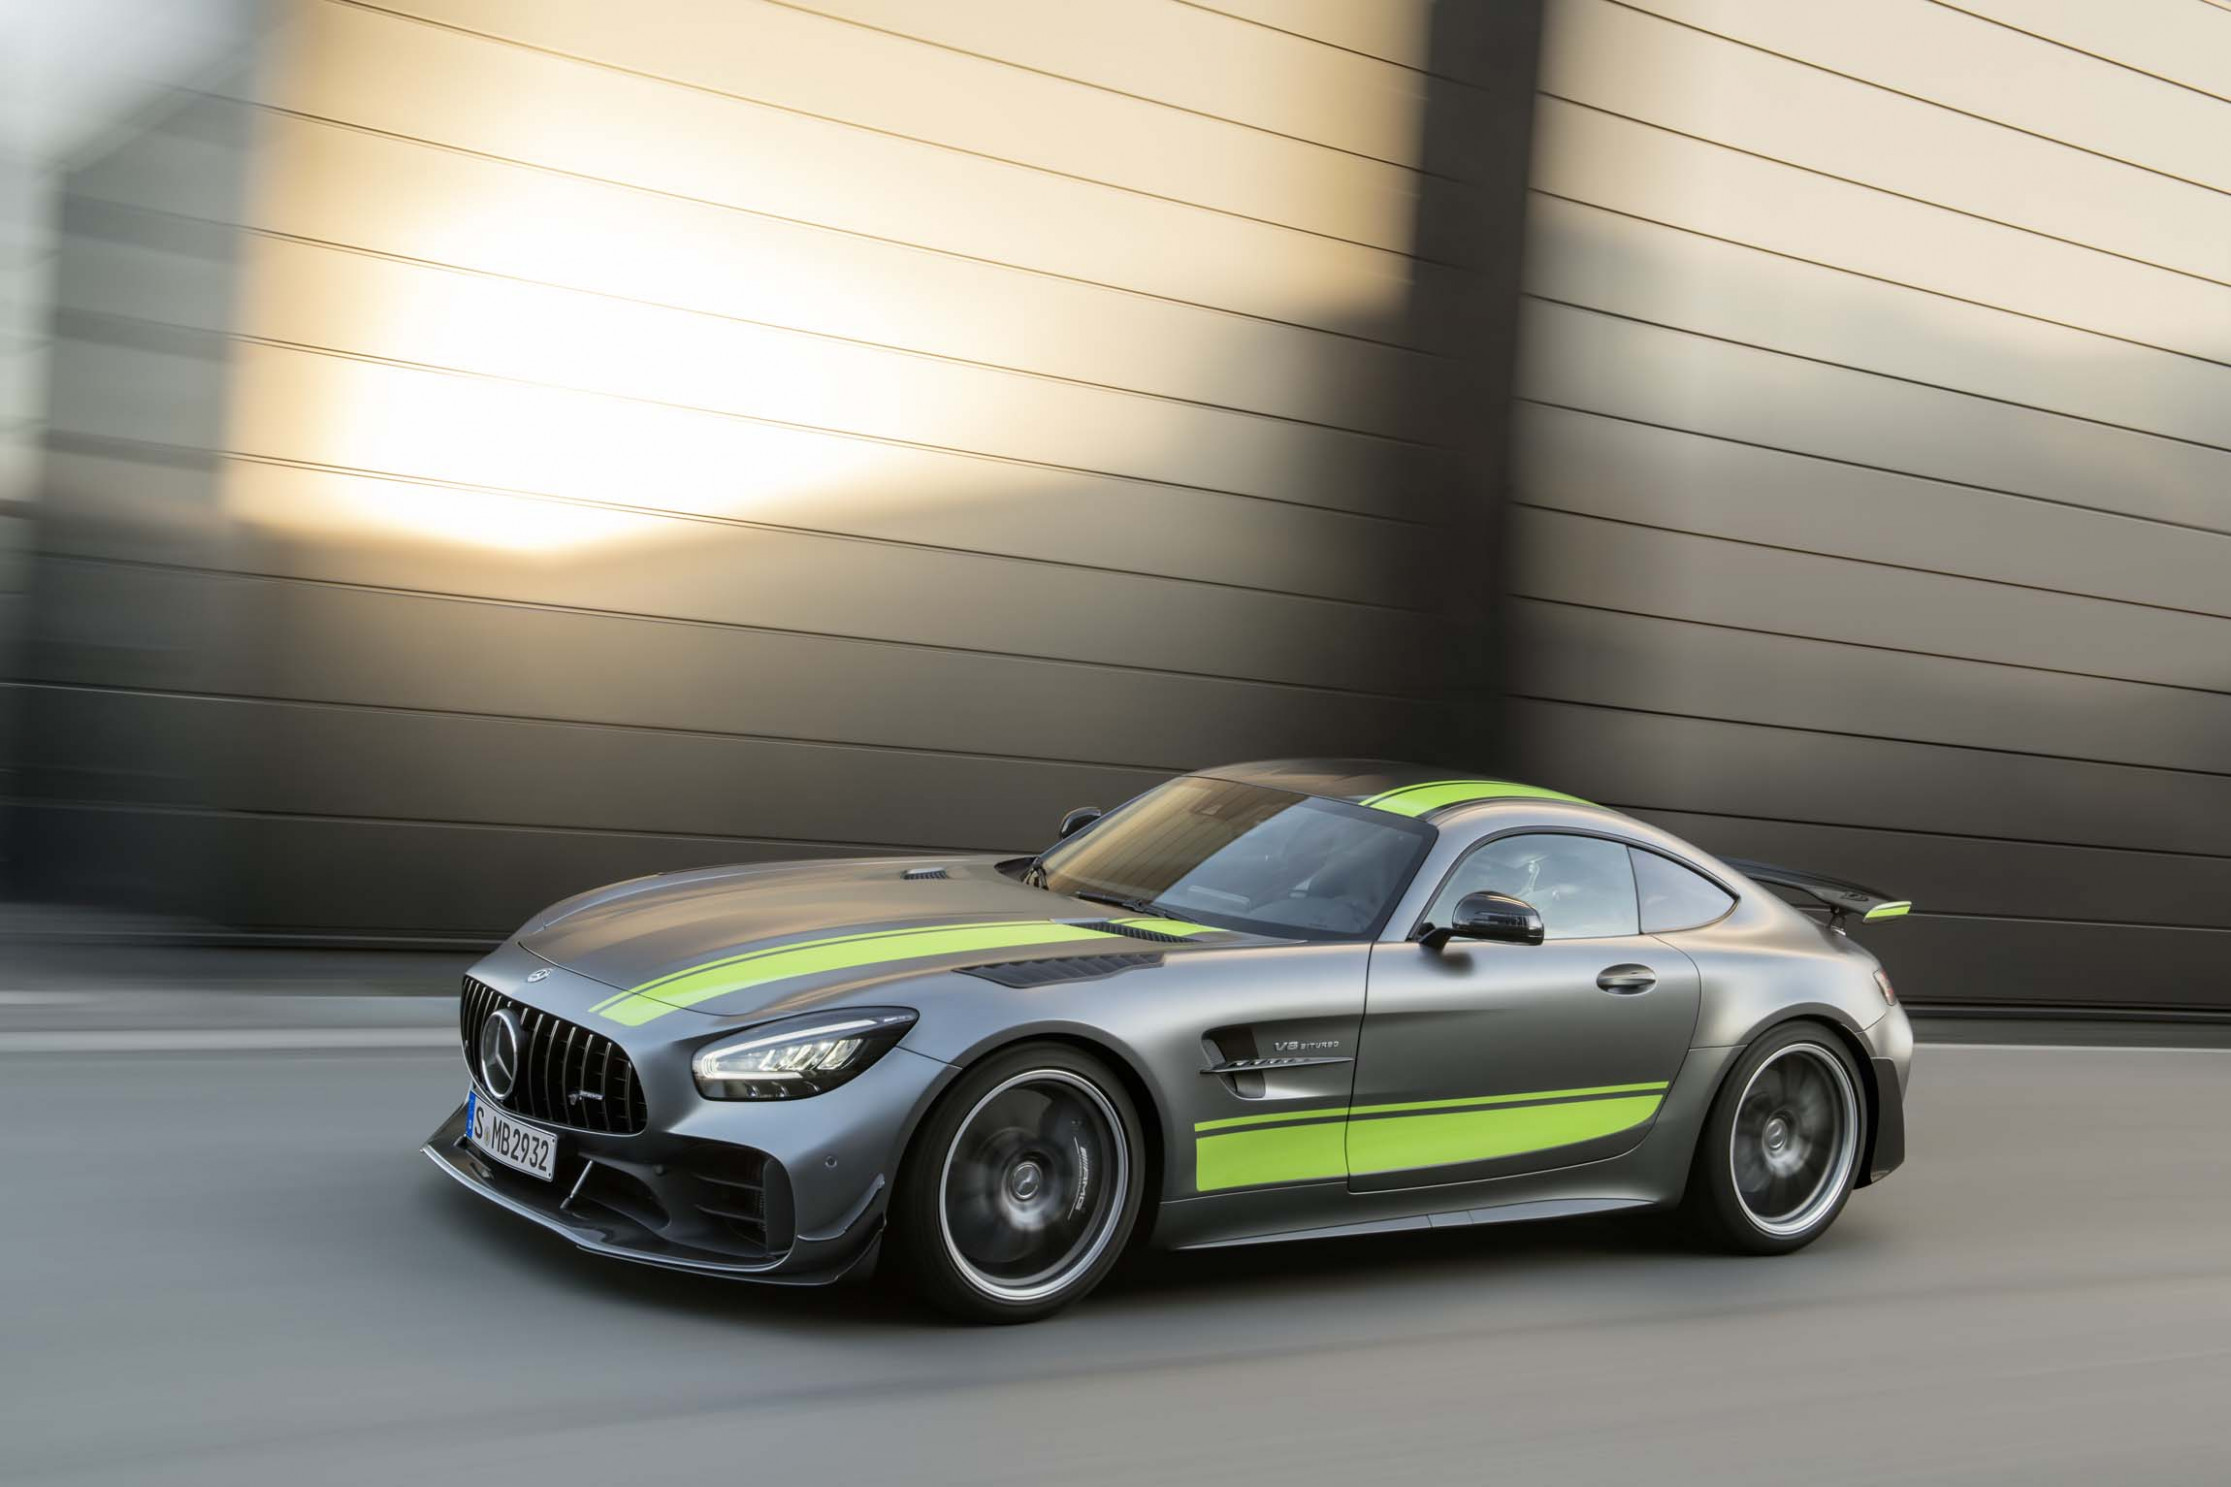 8 Mercedes-AMG GT R Pro priced from $8,8 - 2020 mercedes amg gt price